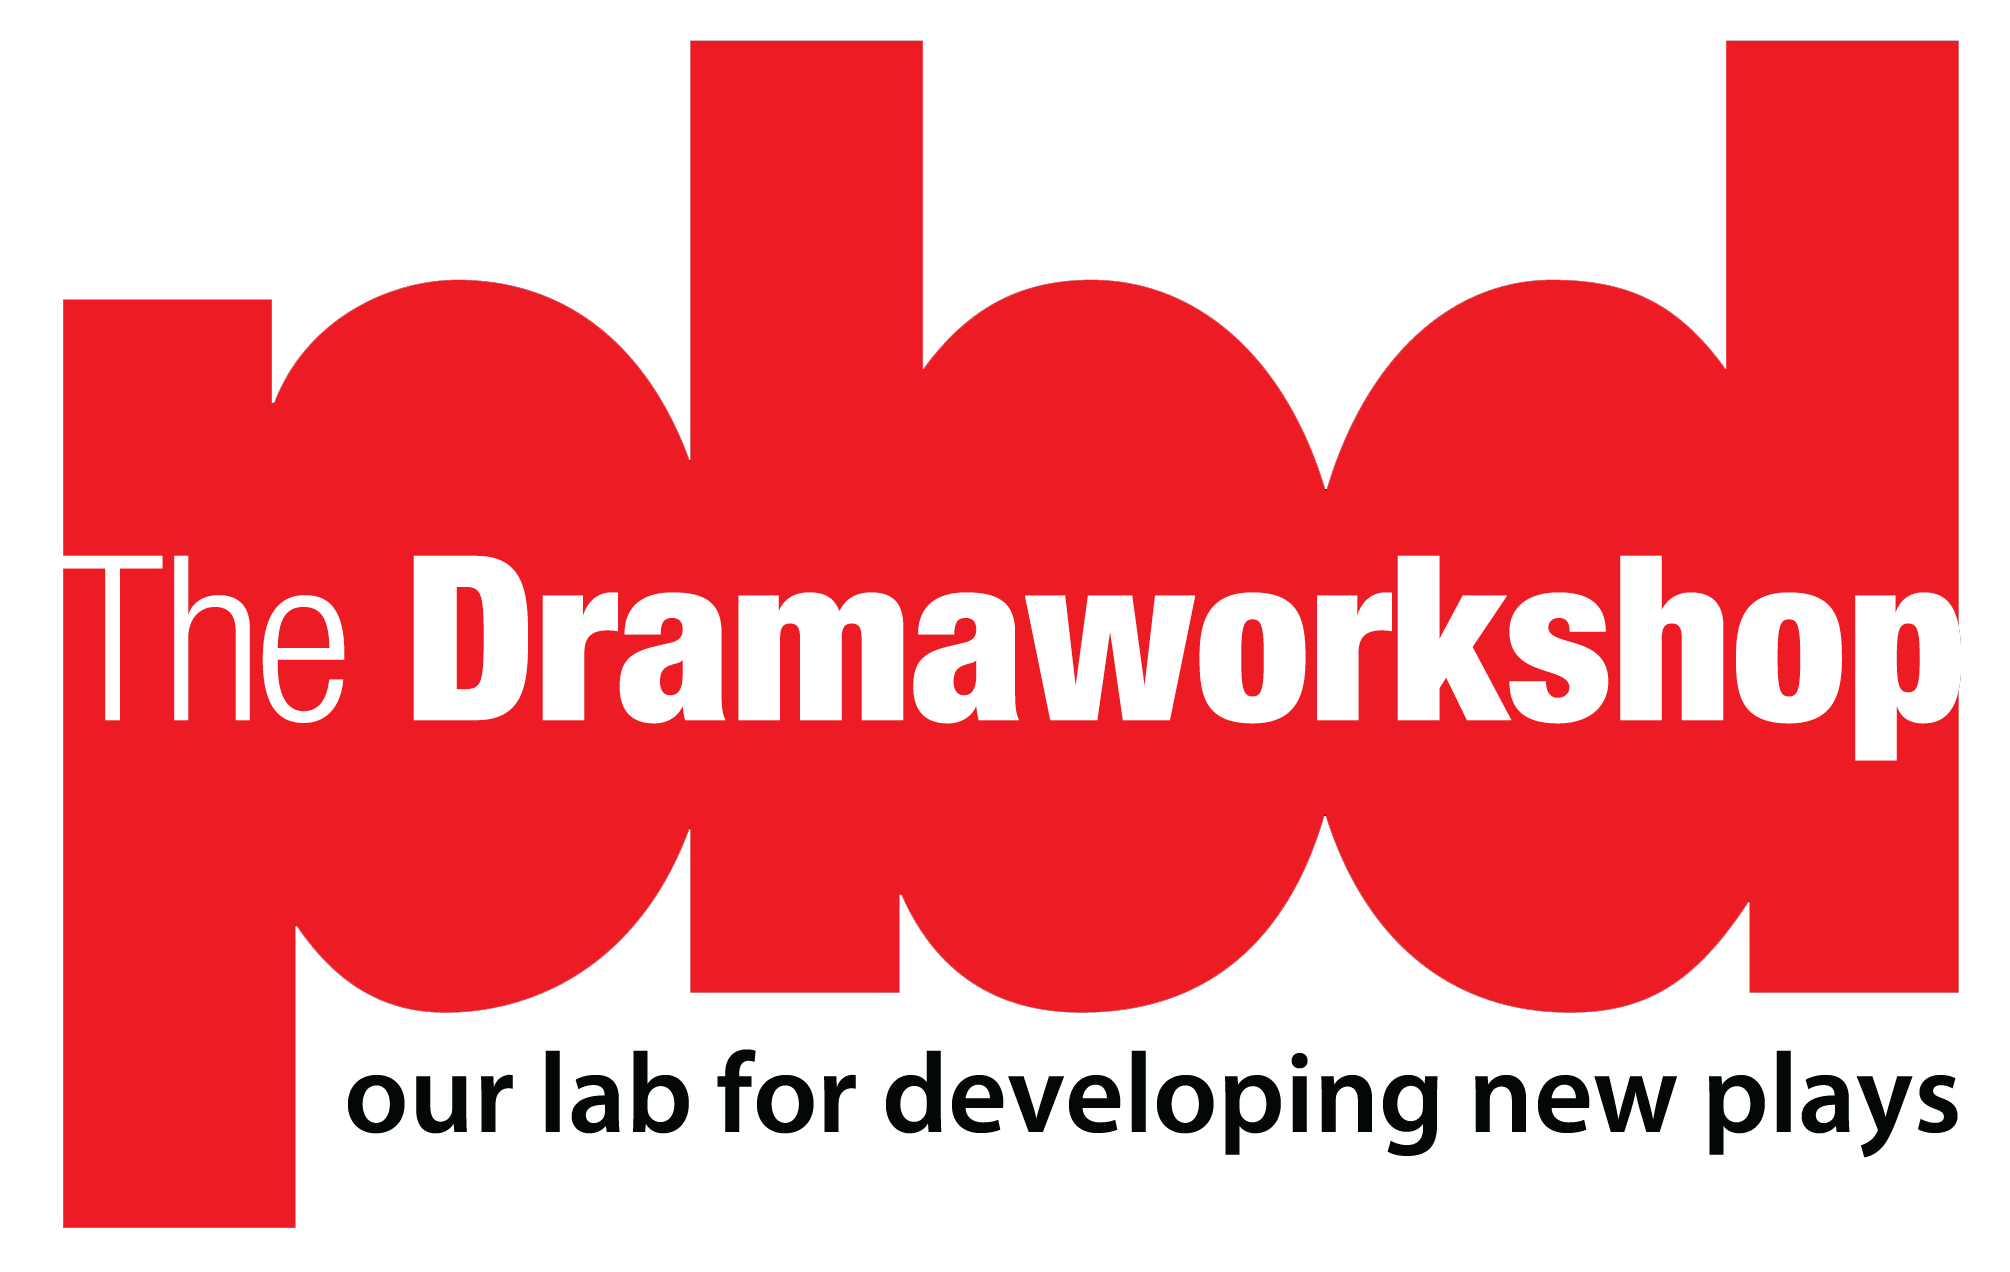 The Dramaworkshop